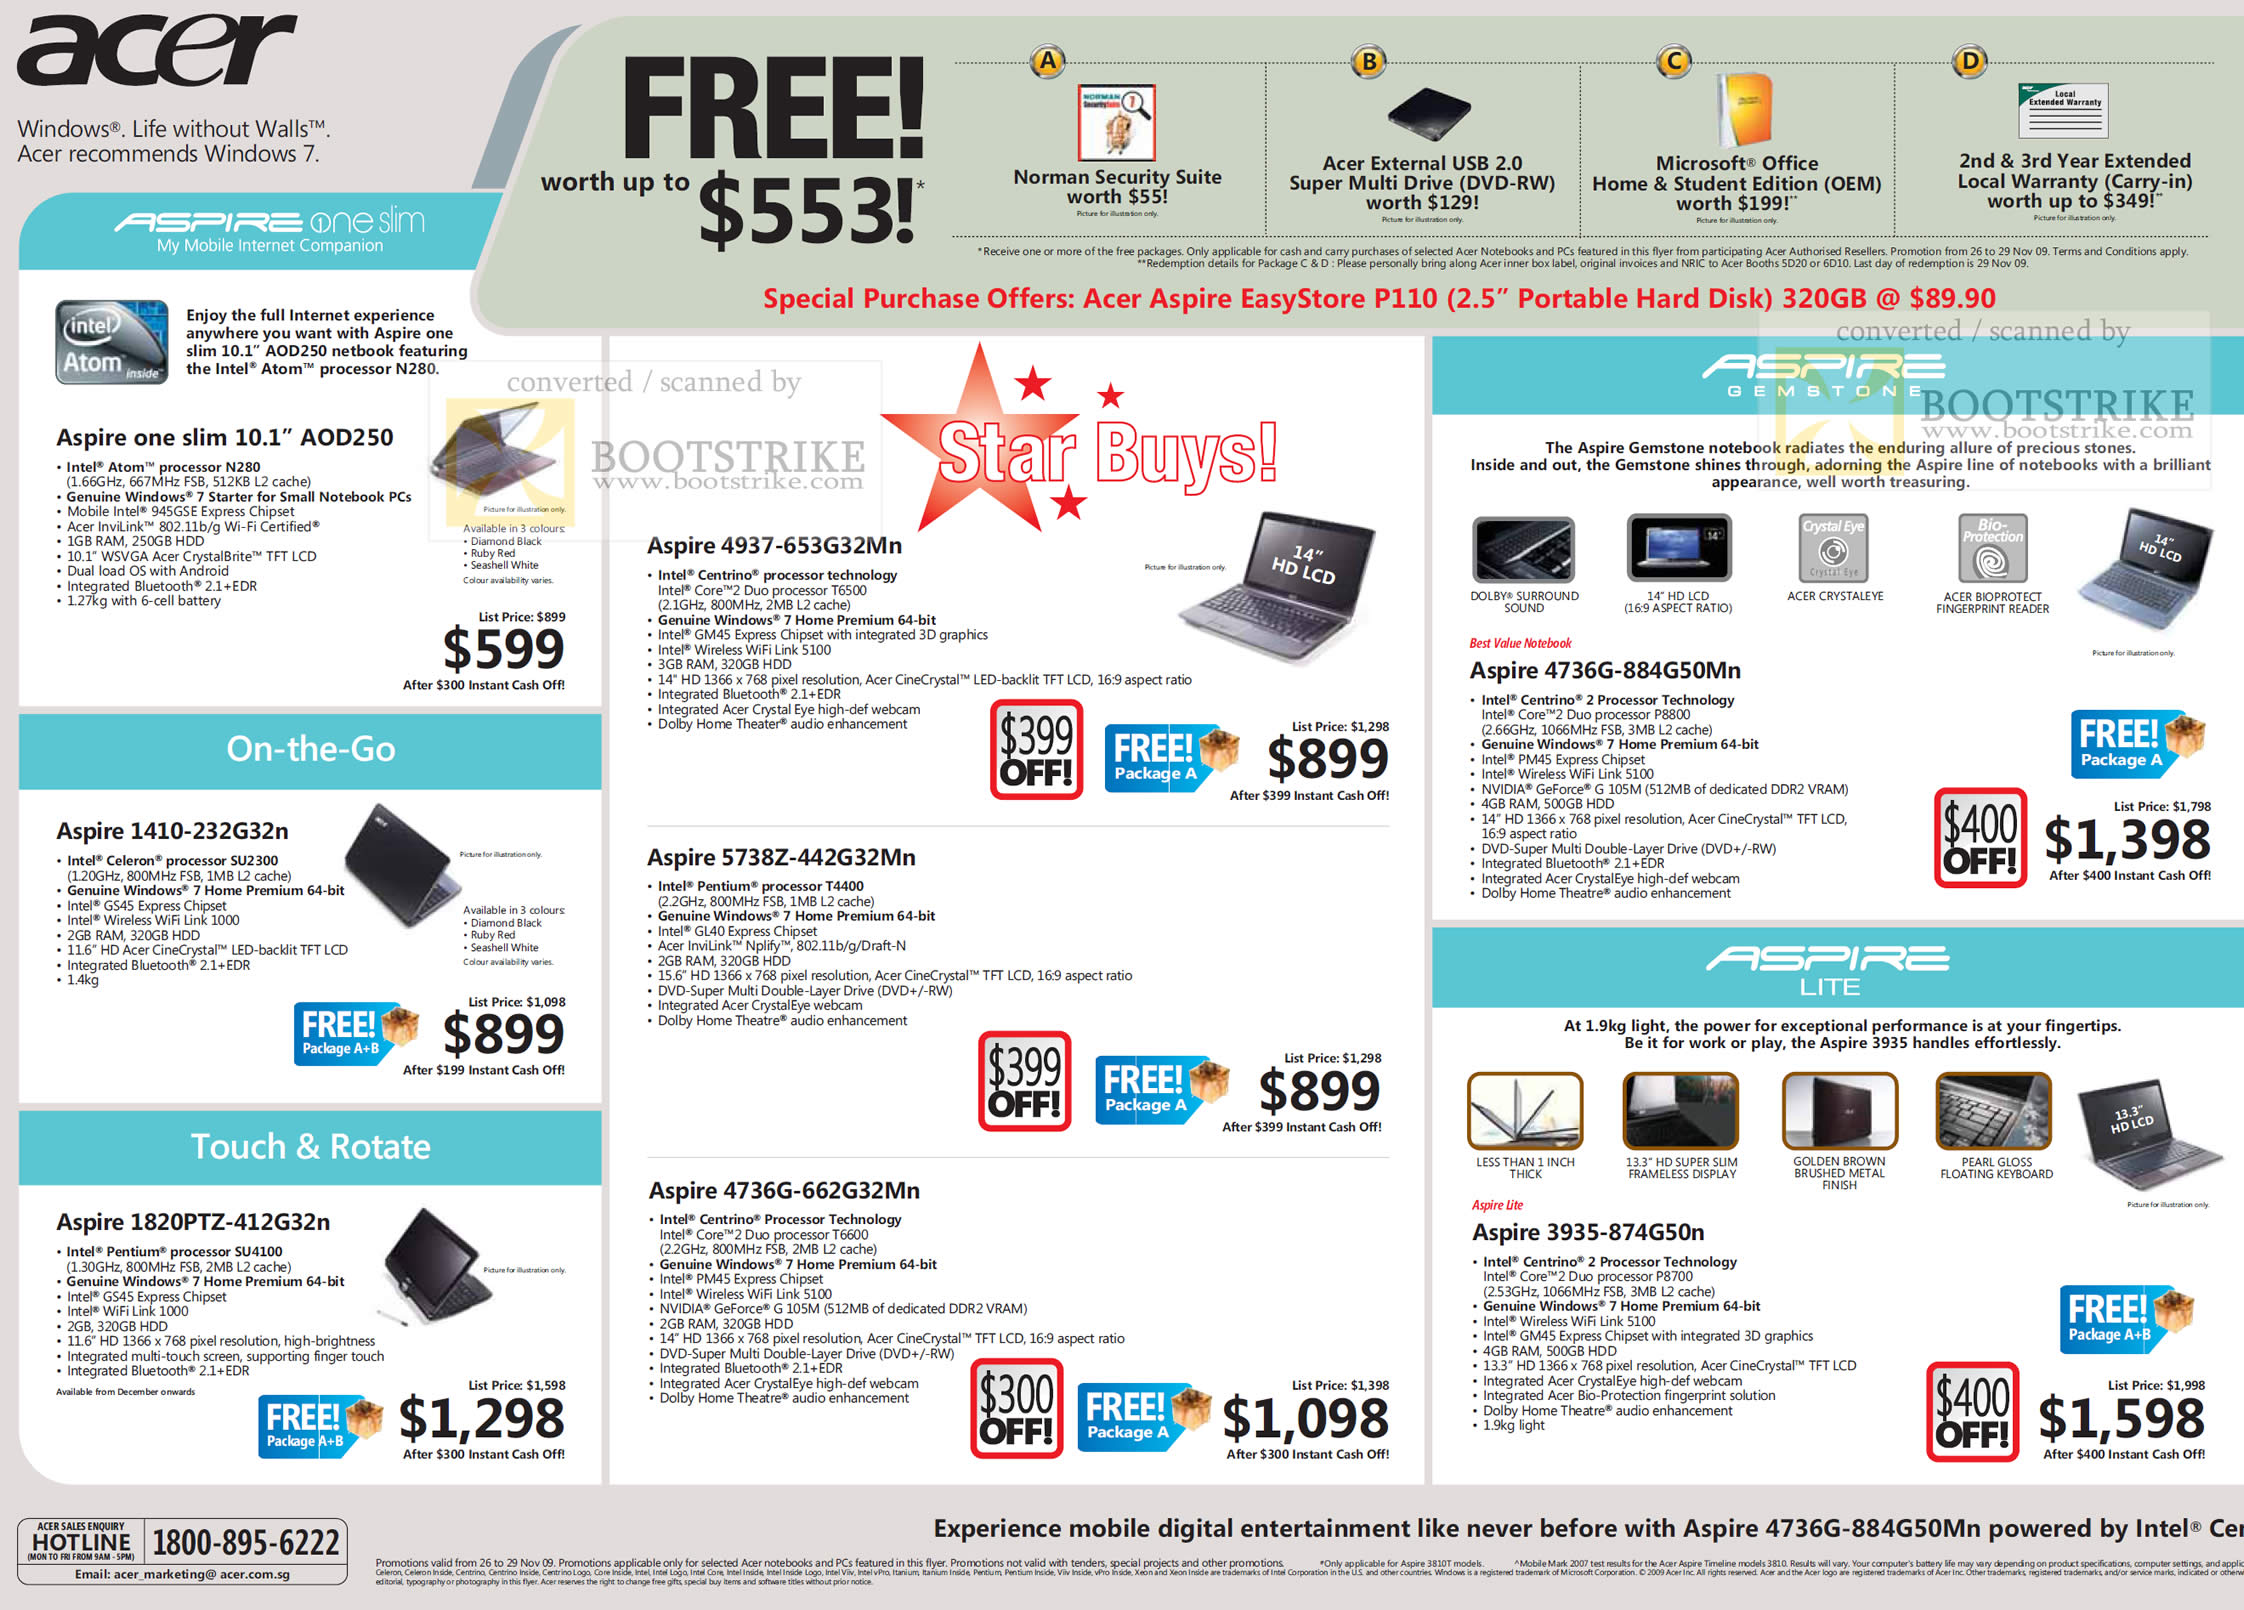 Sitex 2009 price list image brochure of Acer Aspire One Slim Touch Rotate Lite Gemstone EasyStore Notebooks